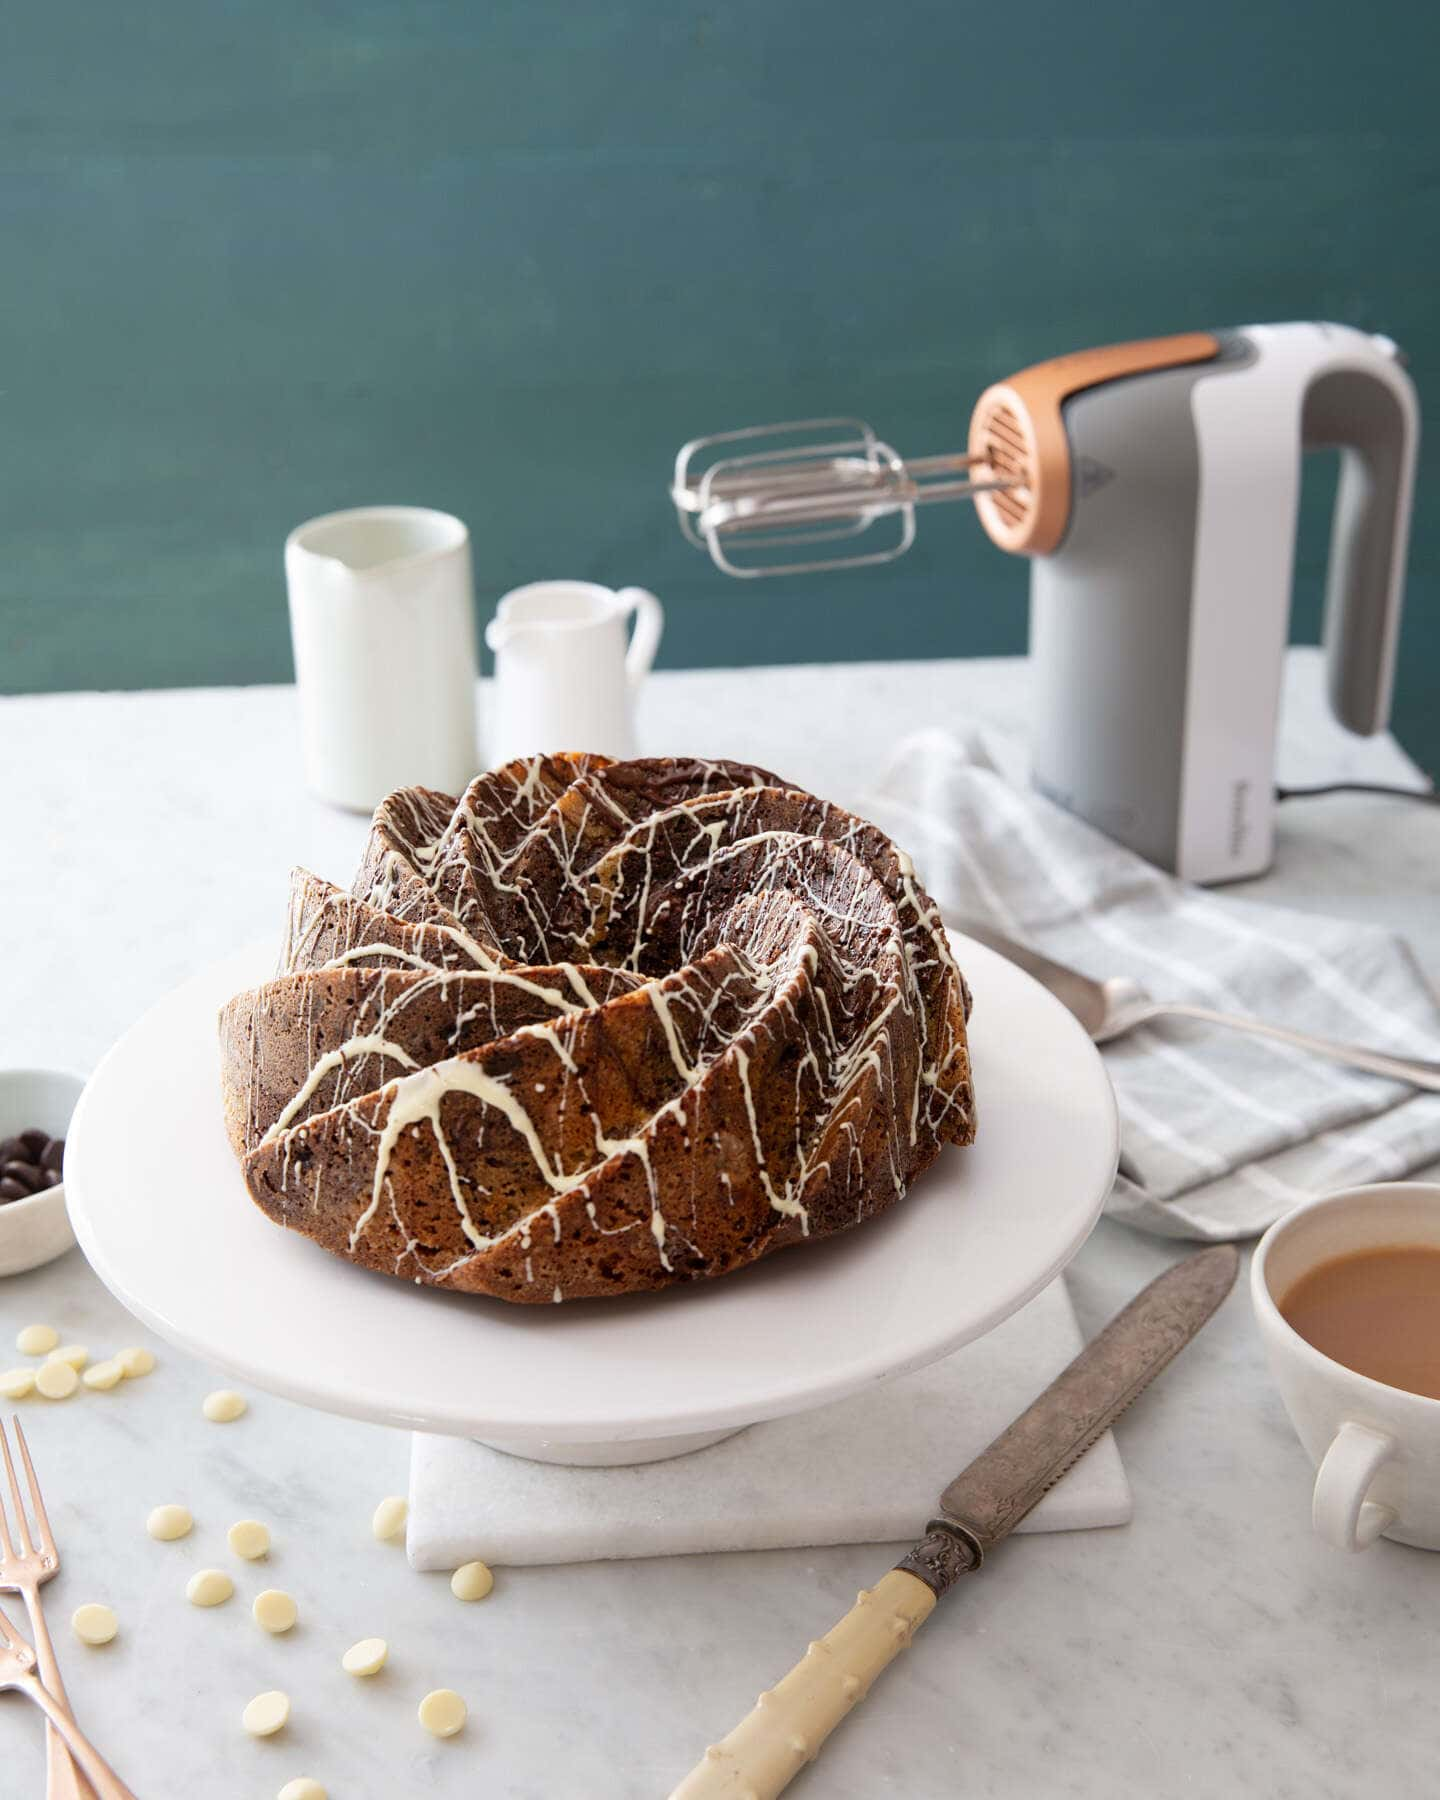 walnut swirl chocolate cake with a breville heat soft mixer in the background with a cup of tea and baking utensils.